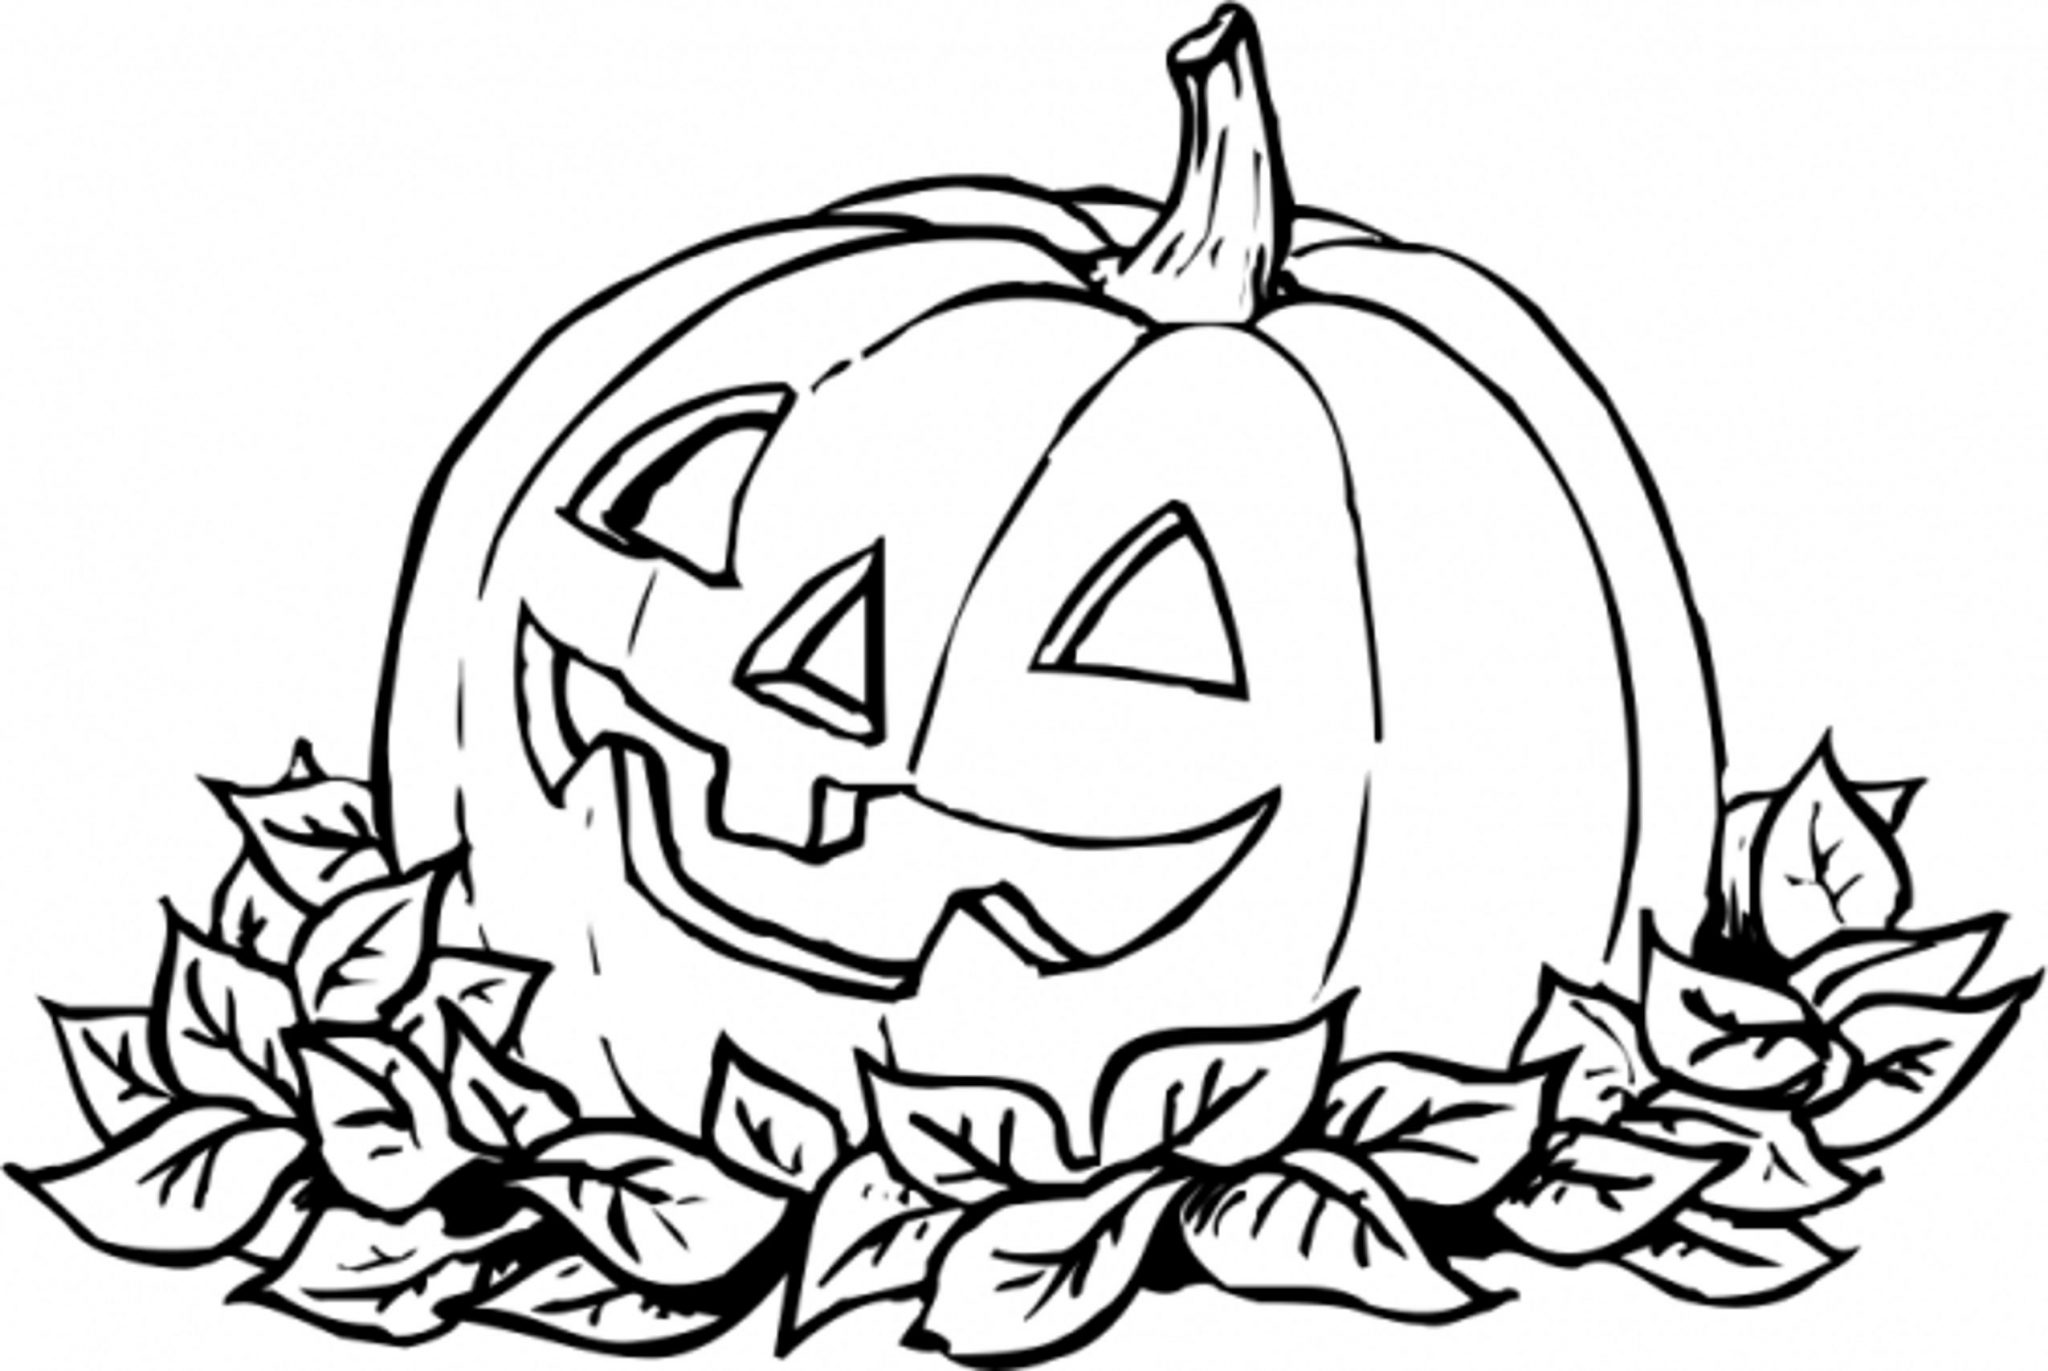 Pumpking coloring pages